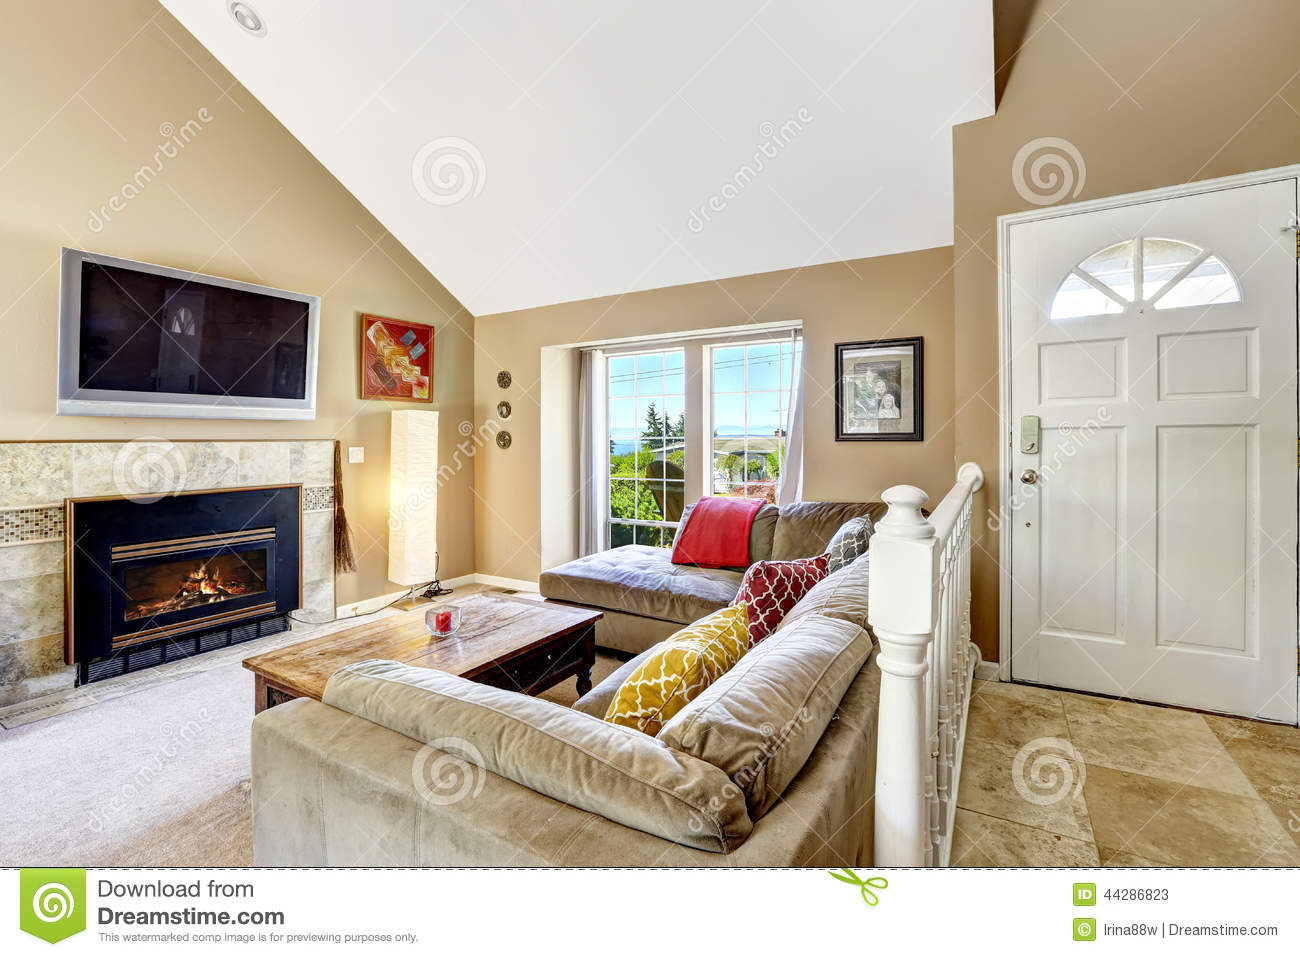 House Interior With High Vaulted Ceiling Living Room Firep Stock Photo Image 44286823